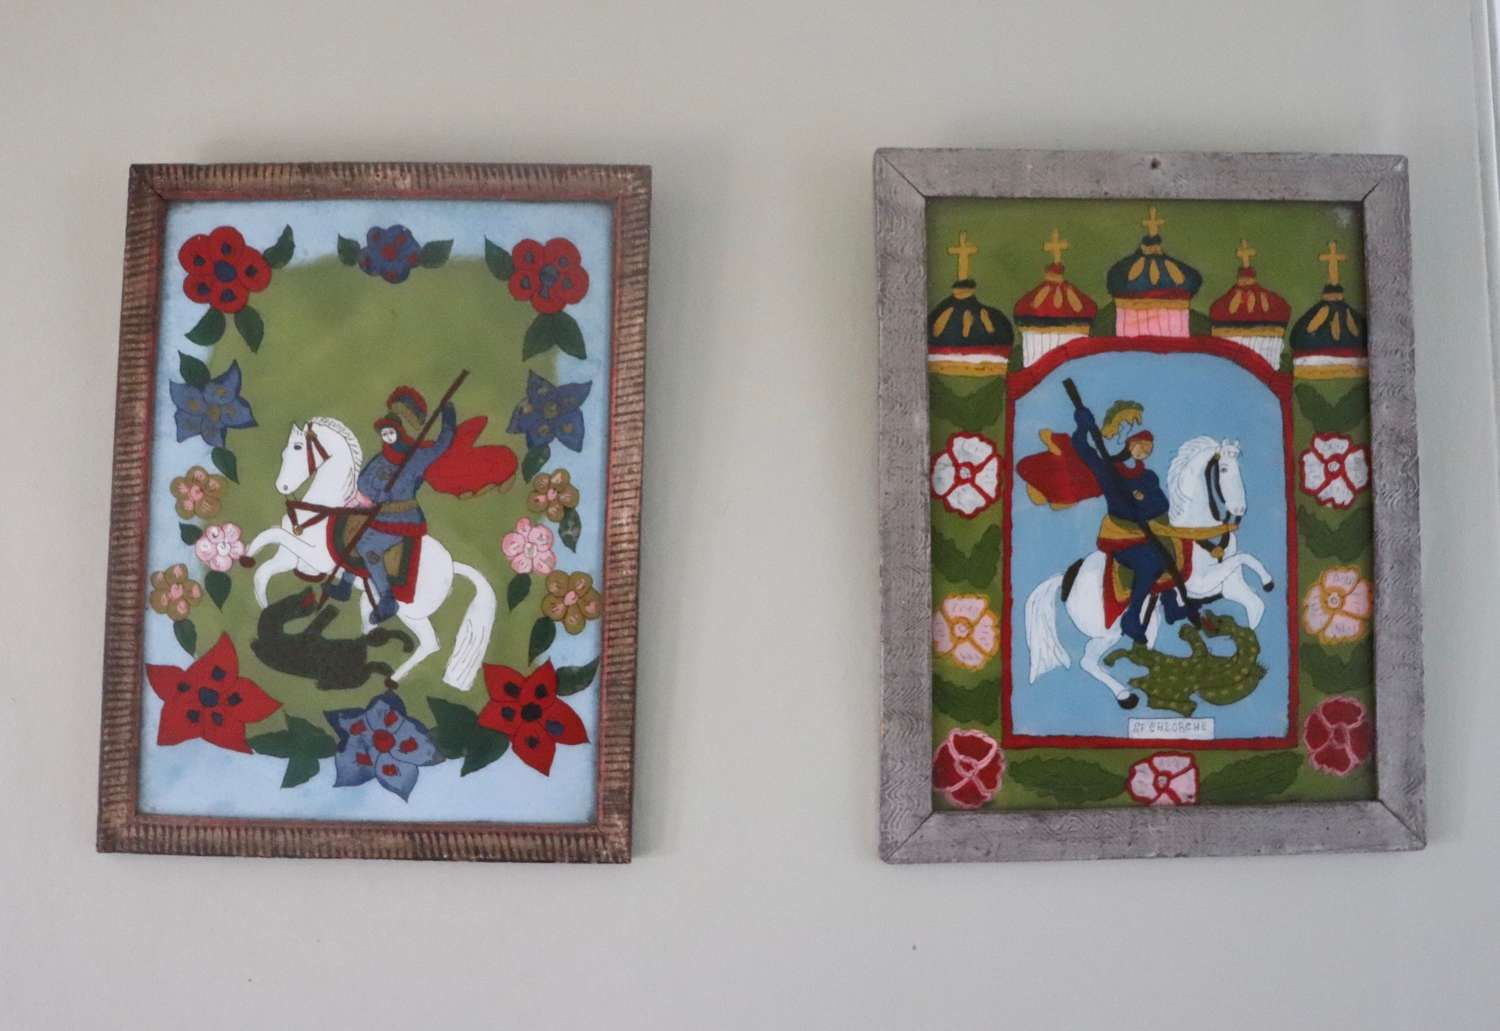 Pair of reverse painted pictures on glass